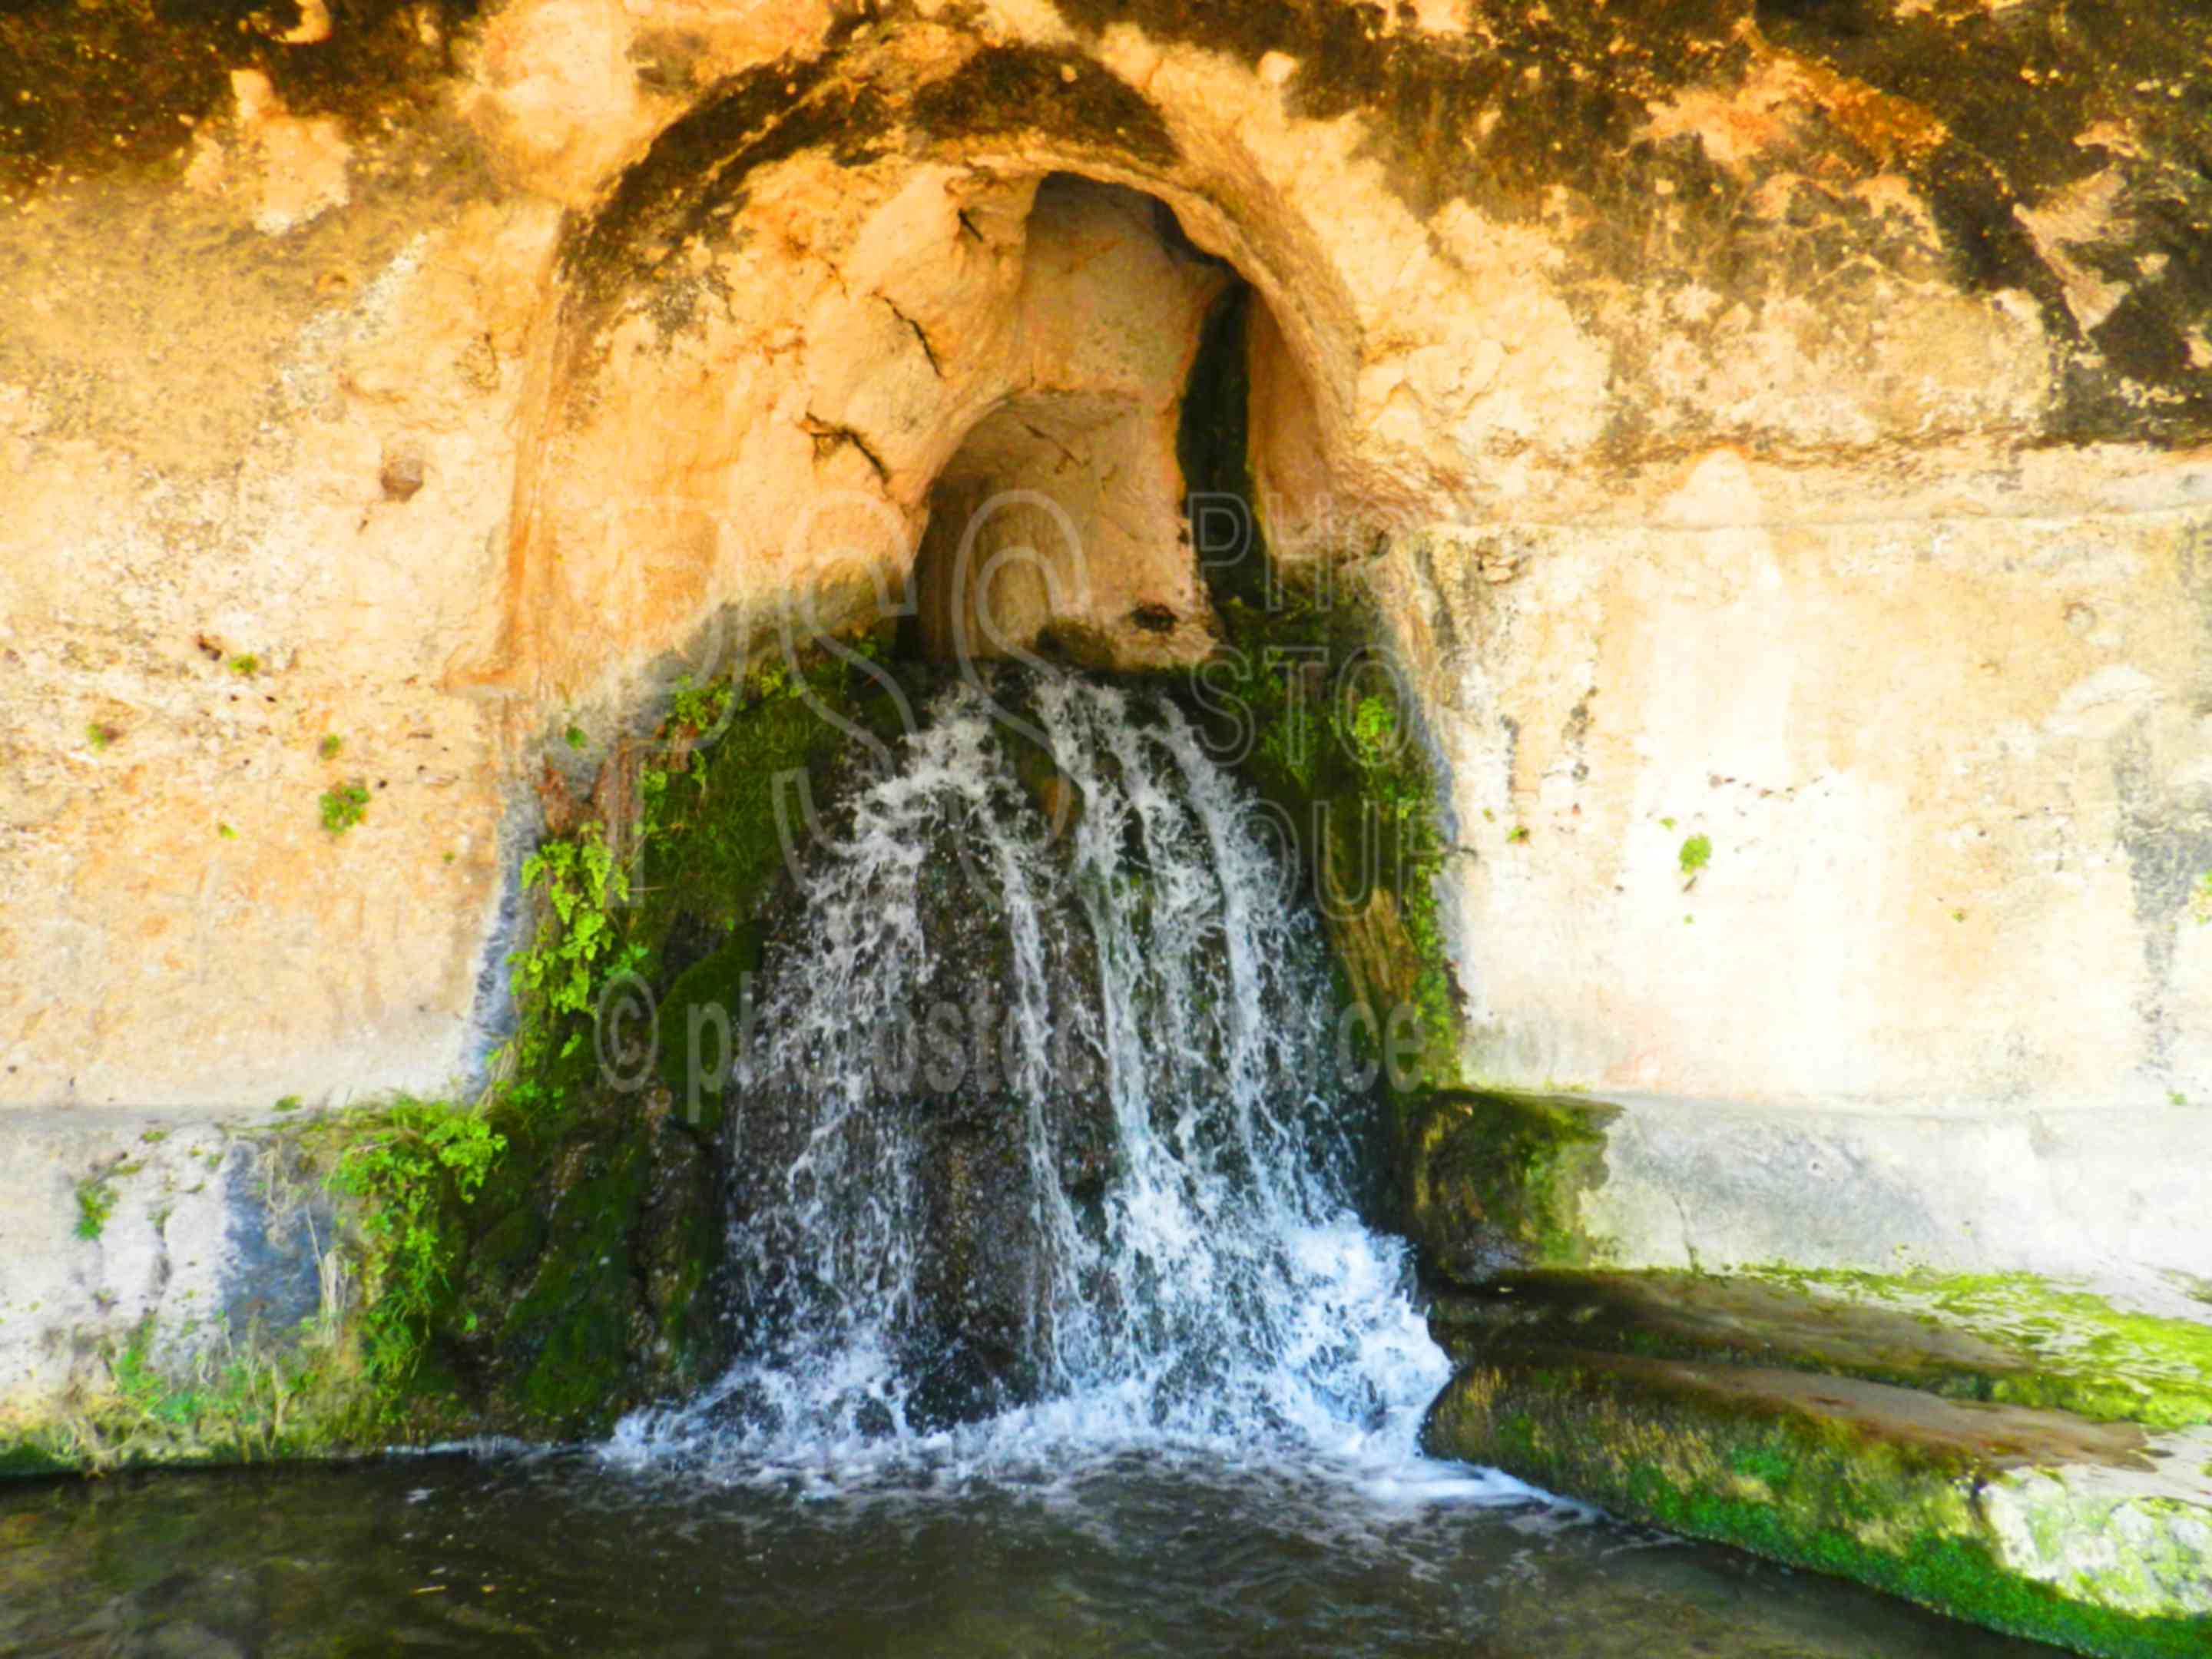 Grotta del Museion,siracusa,archaeology,theatre,theater,greek,performance,ancient,history,historic,ruin,ruins,waterfall,aquaduct